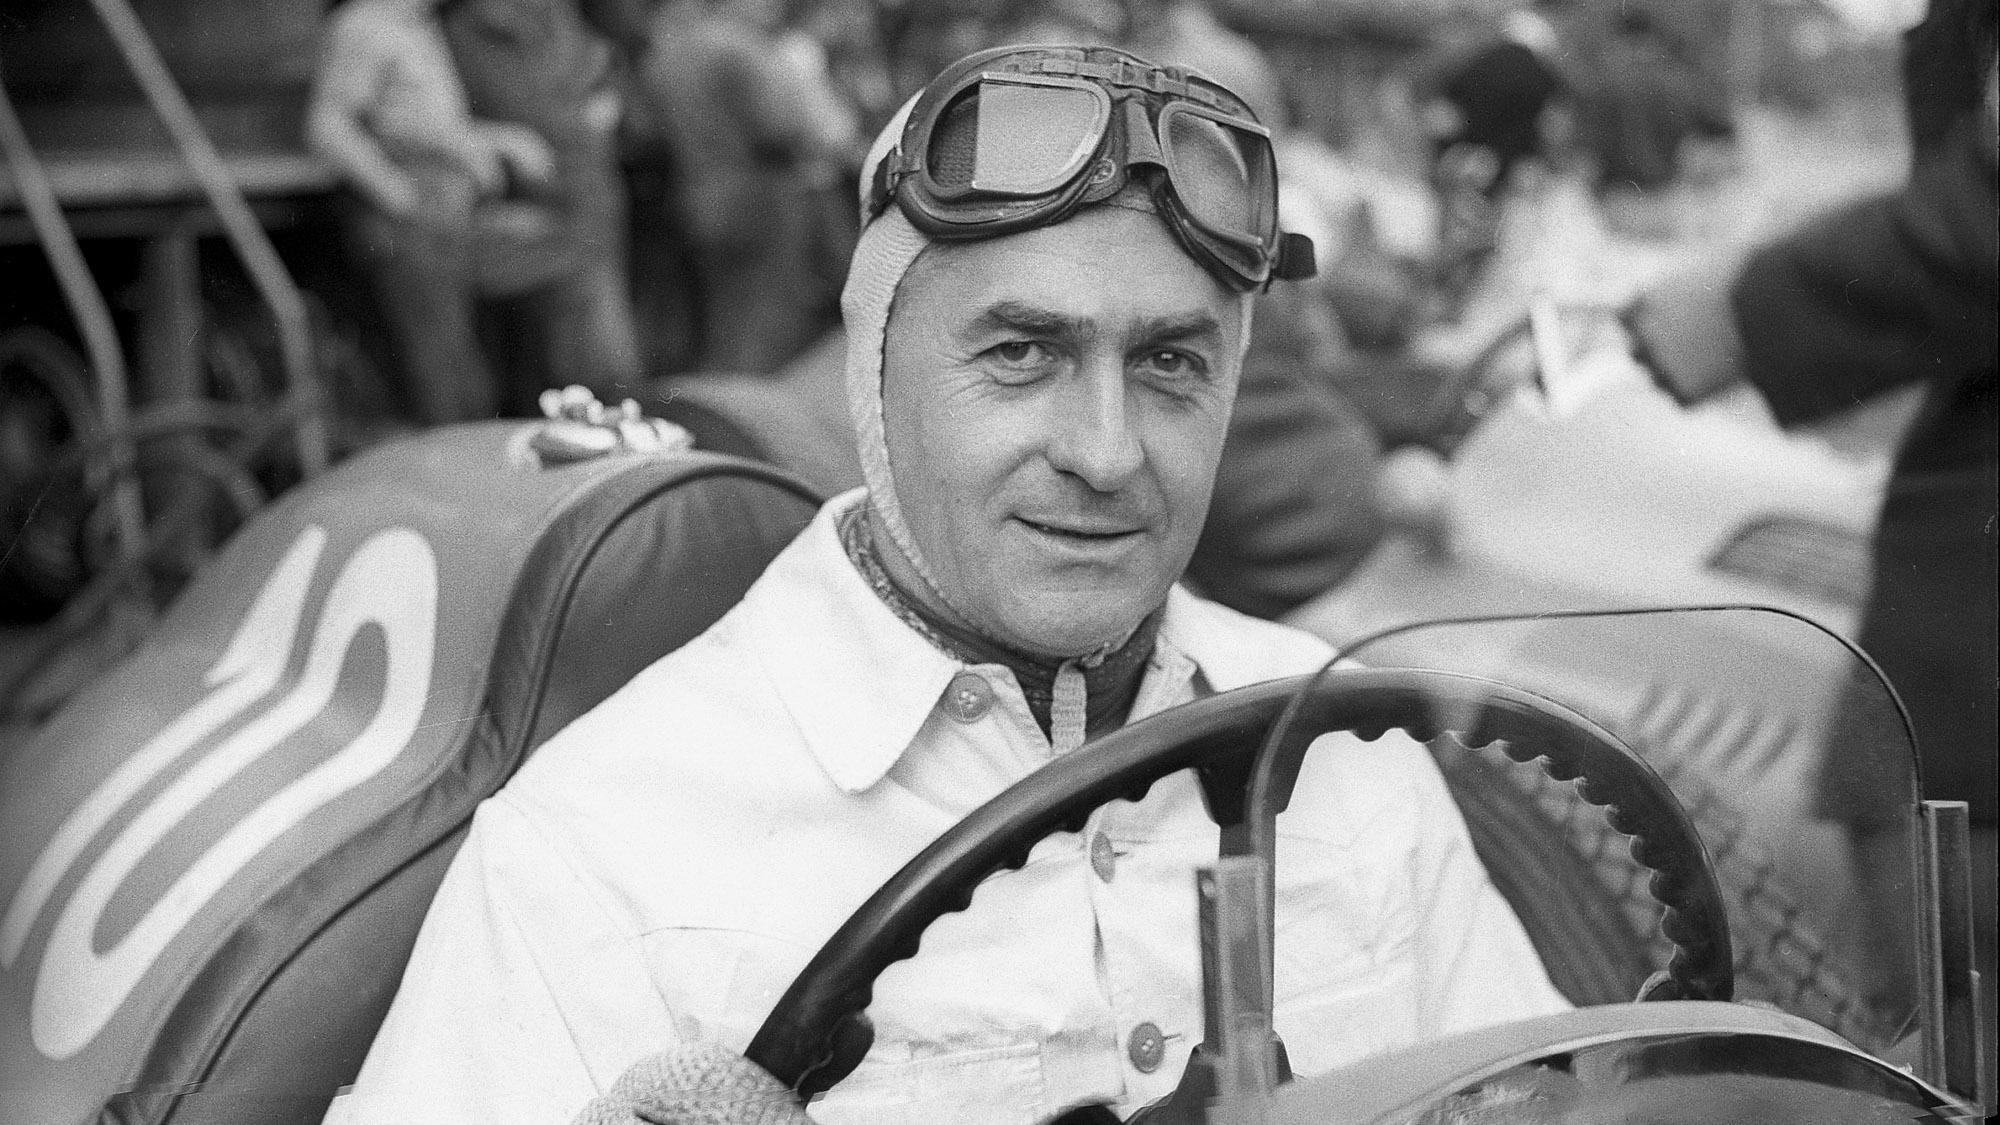 From French Resistance to Le Mans glory – the versatile Louis Rosier